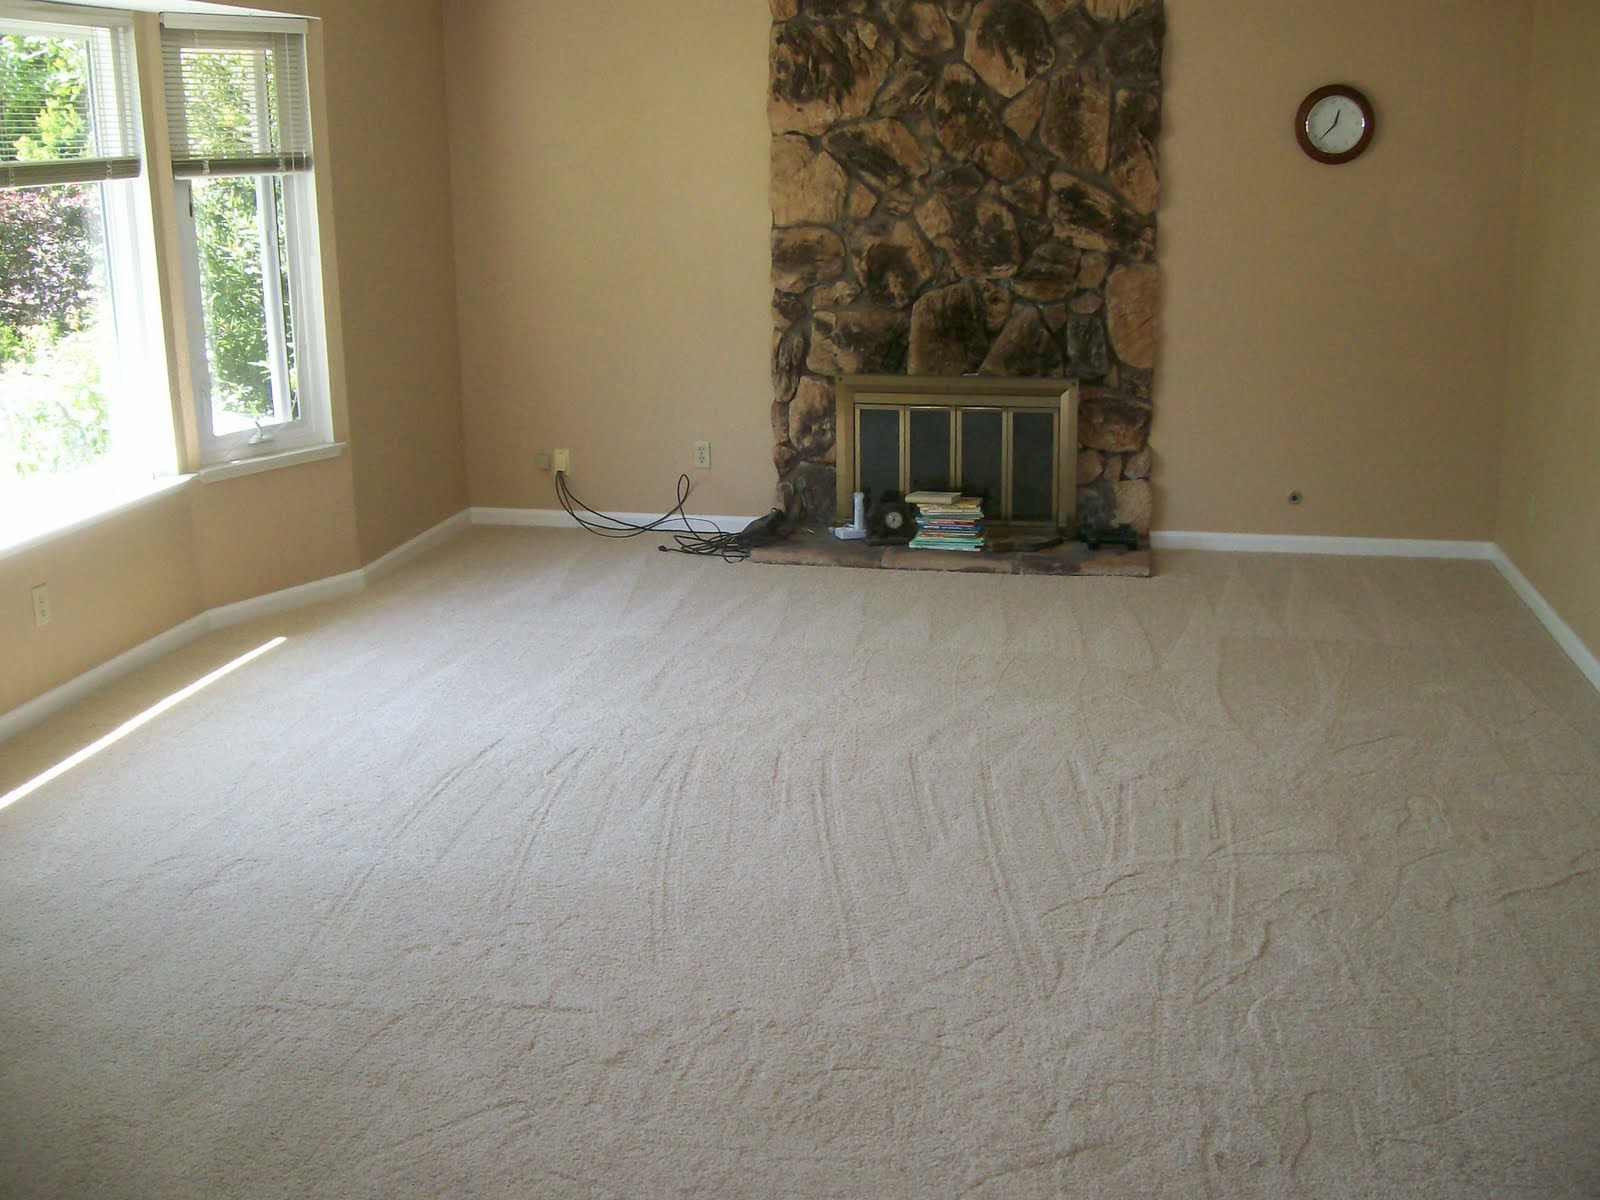 Keeping in touch with George and Shelly: NEW CARPET. NEW ROOM